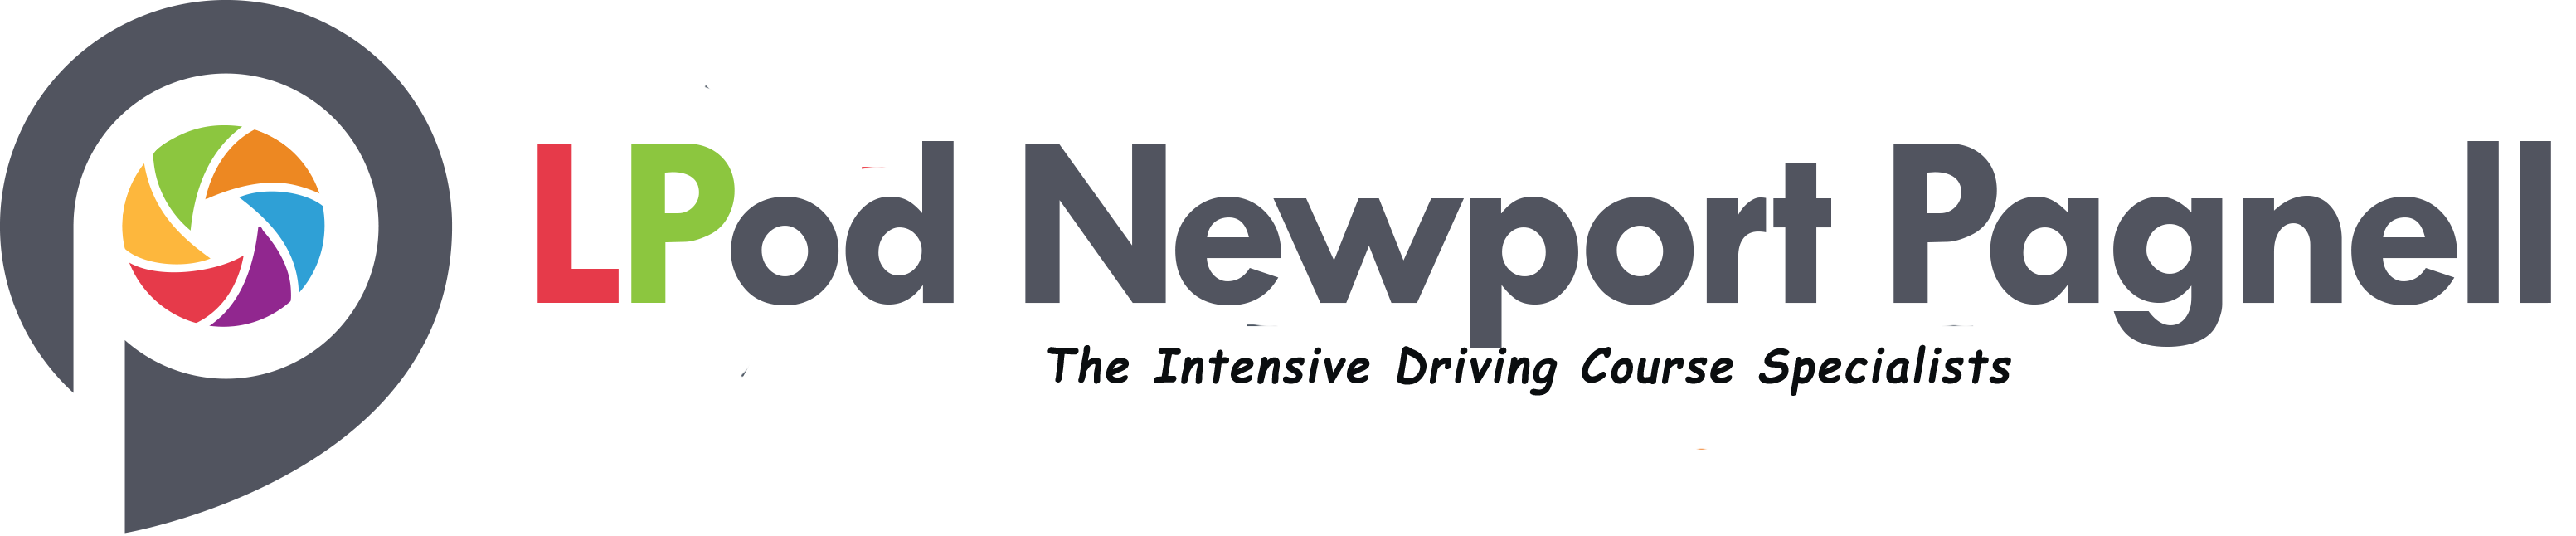 intensive driving courses newport pagnell, one week driving newport pagnell,